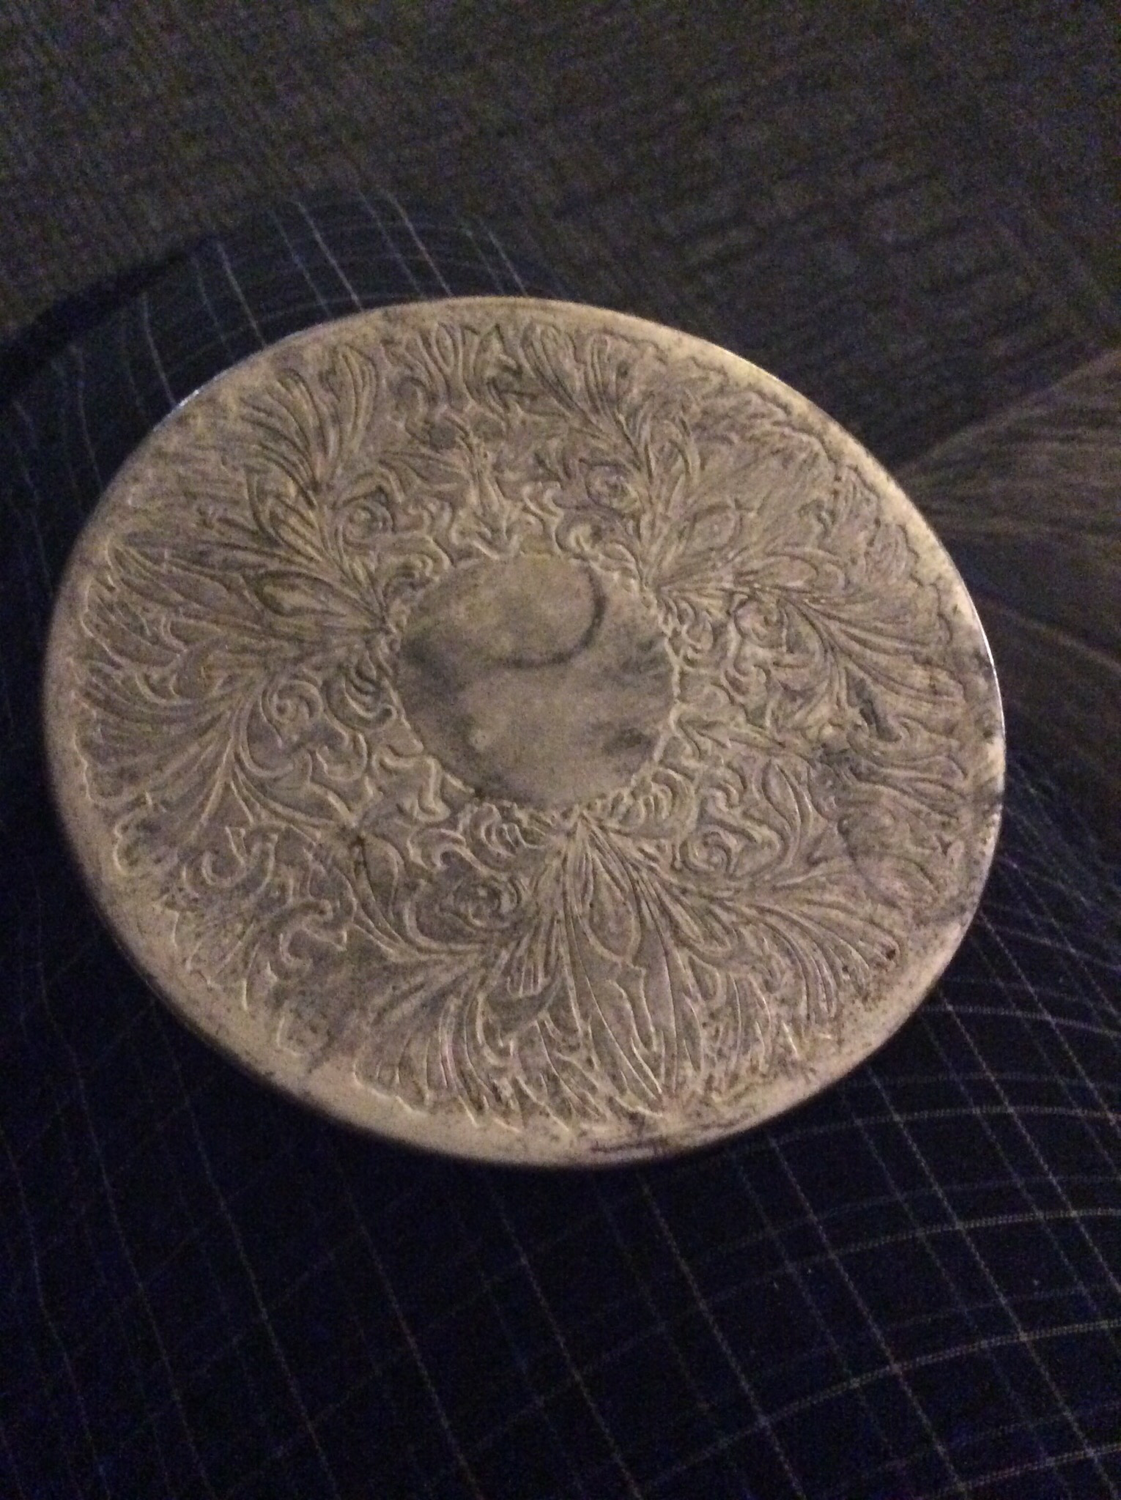 Trivet coaster charging vessel empower energize a spirit full lunar cycle